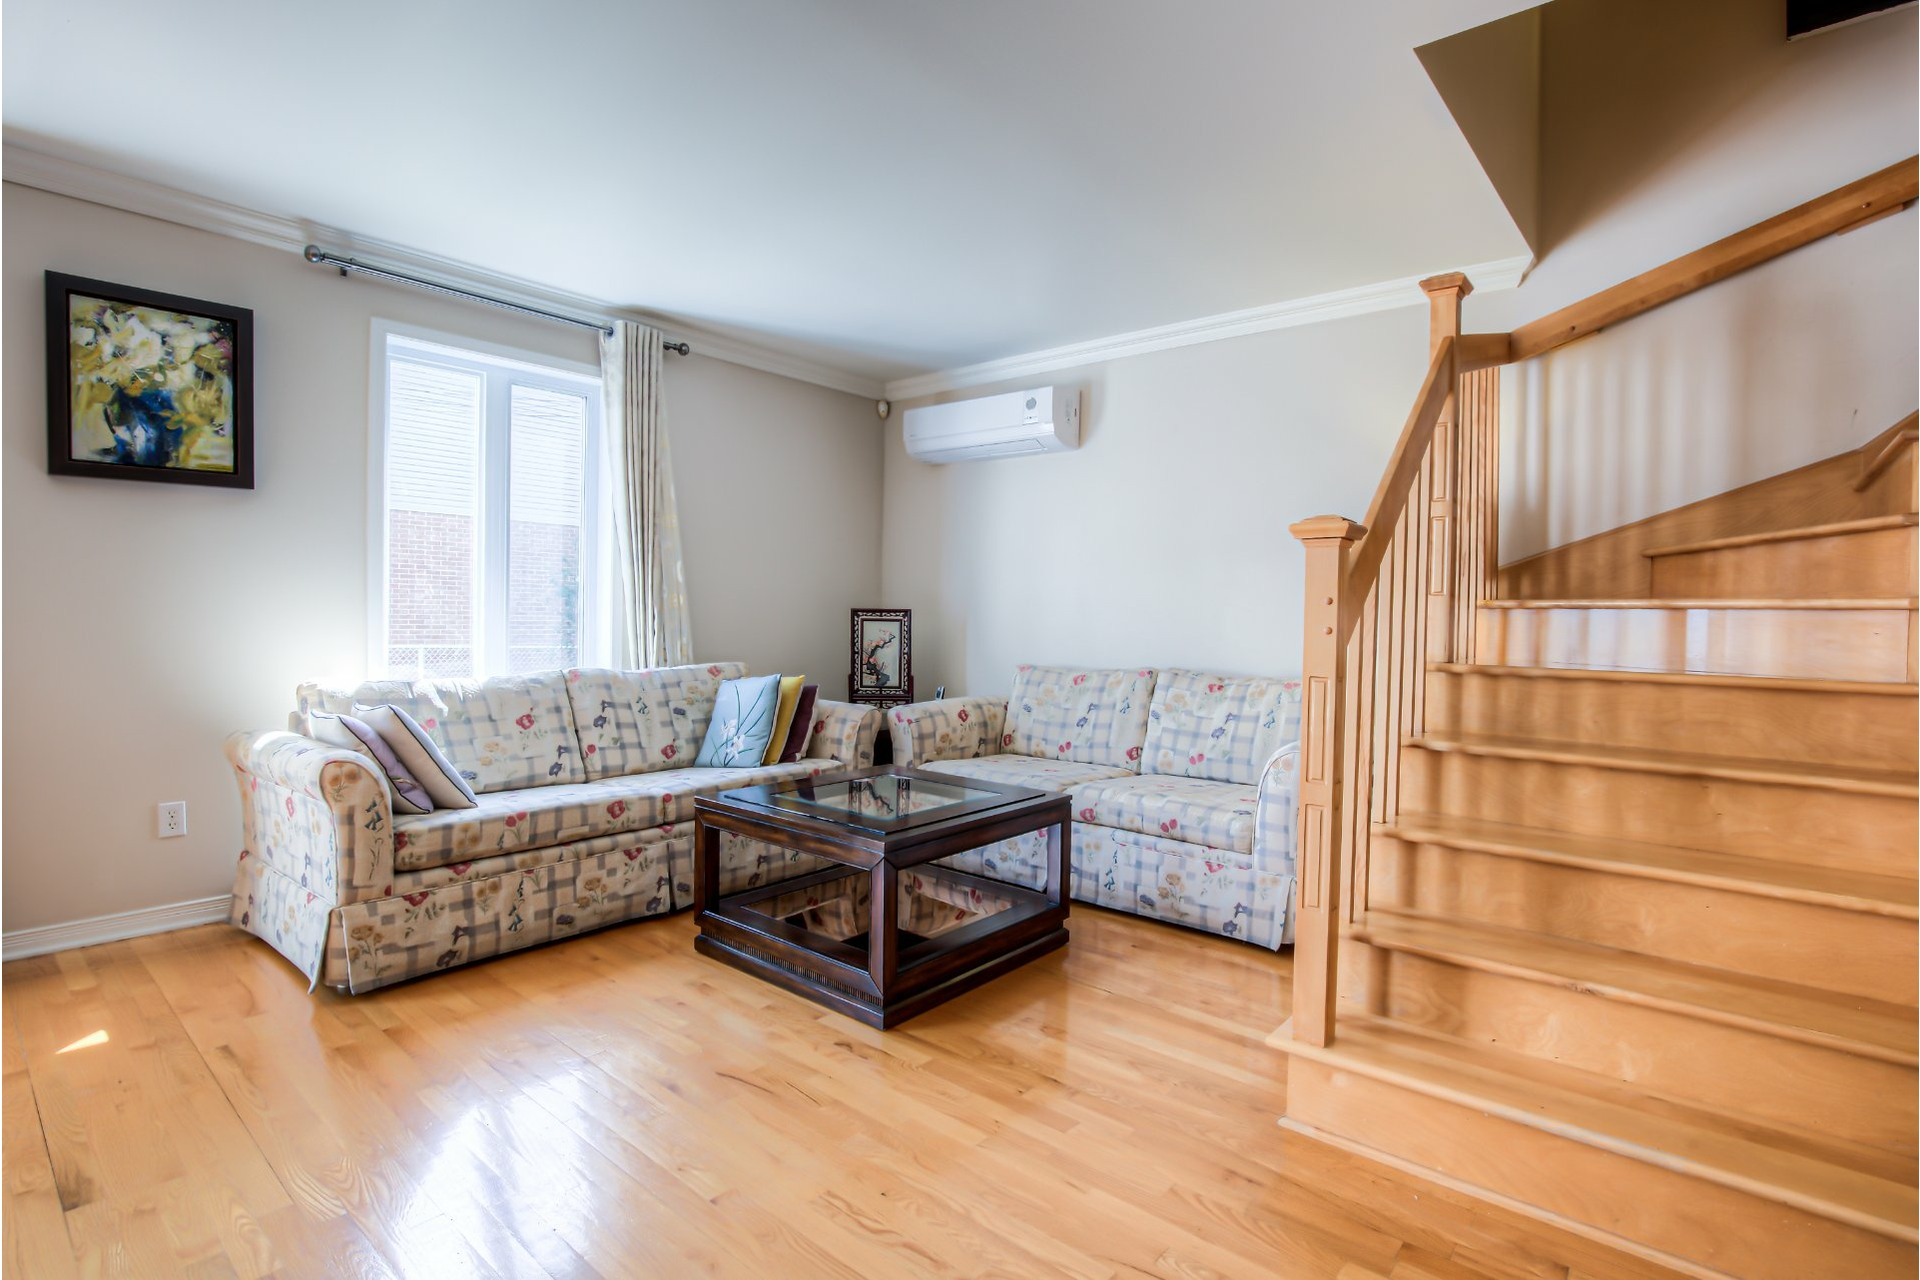 image 2 - House For sale Pierrefonds-Roxboro Montréal  - 8 rooms